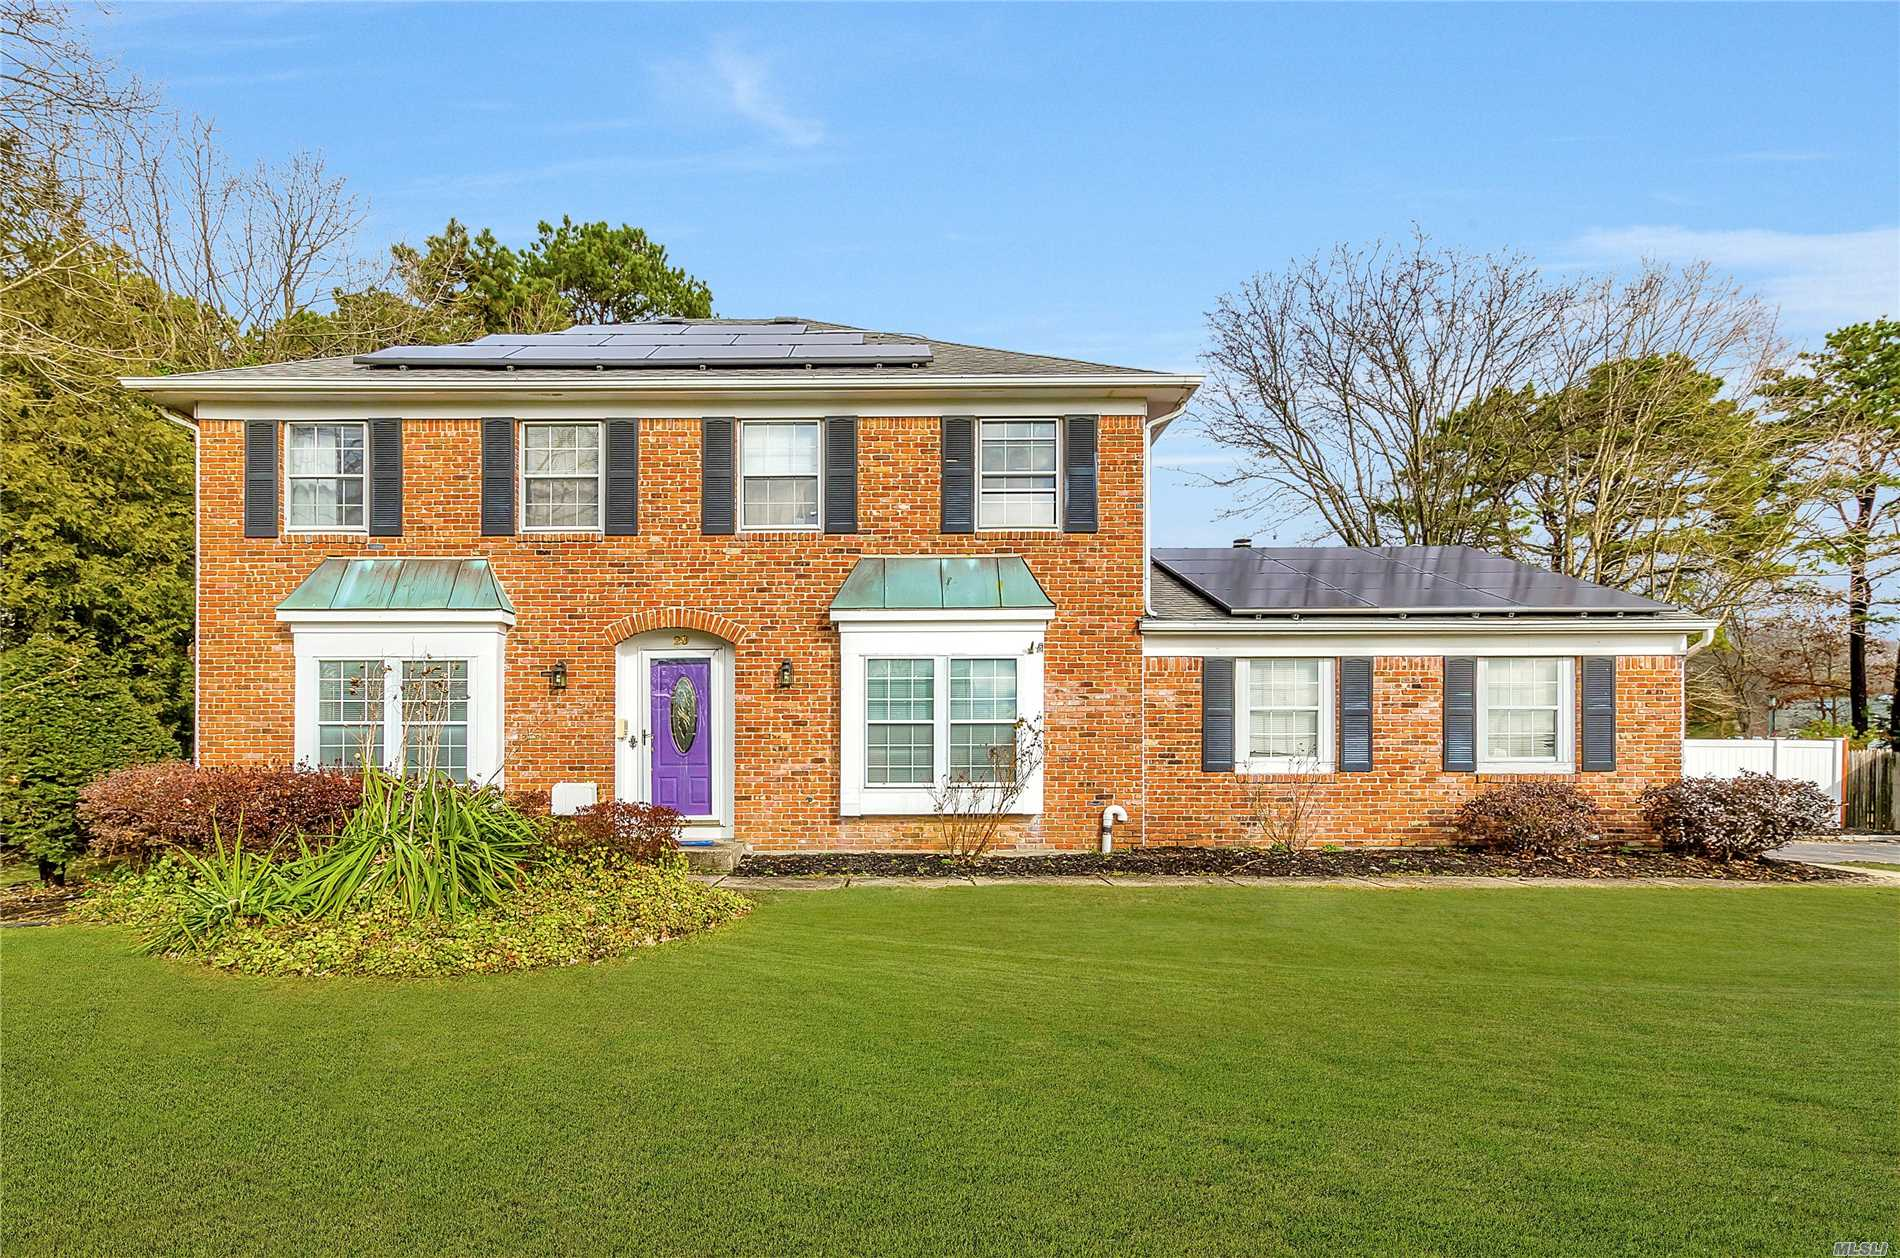 Stunning And Spacious Brick Front Colonial Offers 5Br, 3.5Ba Located On Fully Fenced 1/2 Acre. Home Has Solar Panels (2018), New Burner, Tank & Hw Heater (All 2018), And Plumbing Has Been Rerouted From Slab Through Walls With Ez Access. Private Entertainers Yard Has L-Shaped Pool With New Liner/Filter/Pump (2018) & Sports Court. Perfect Home For All